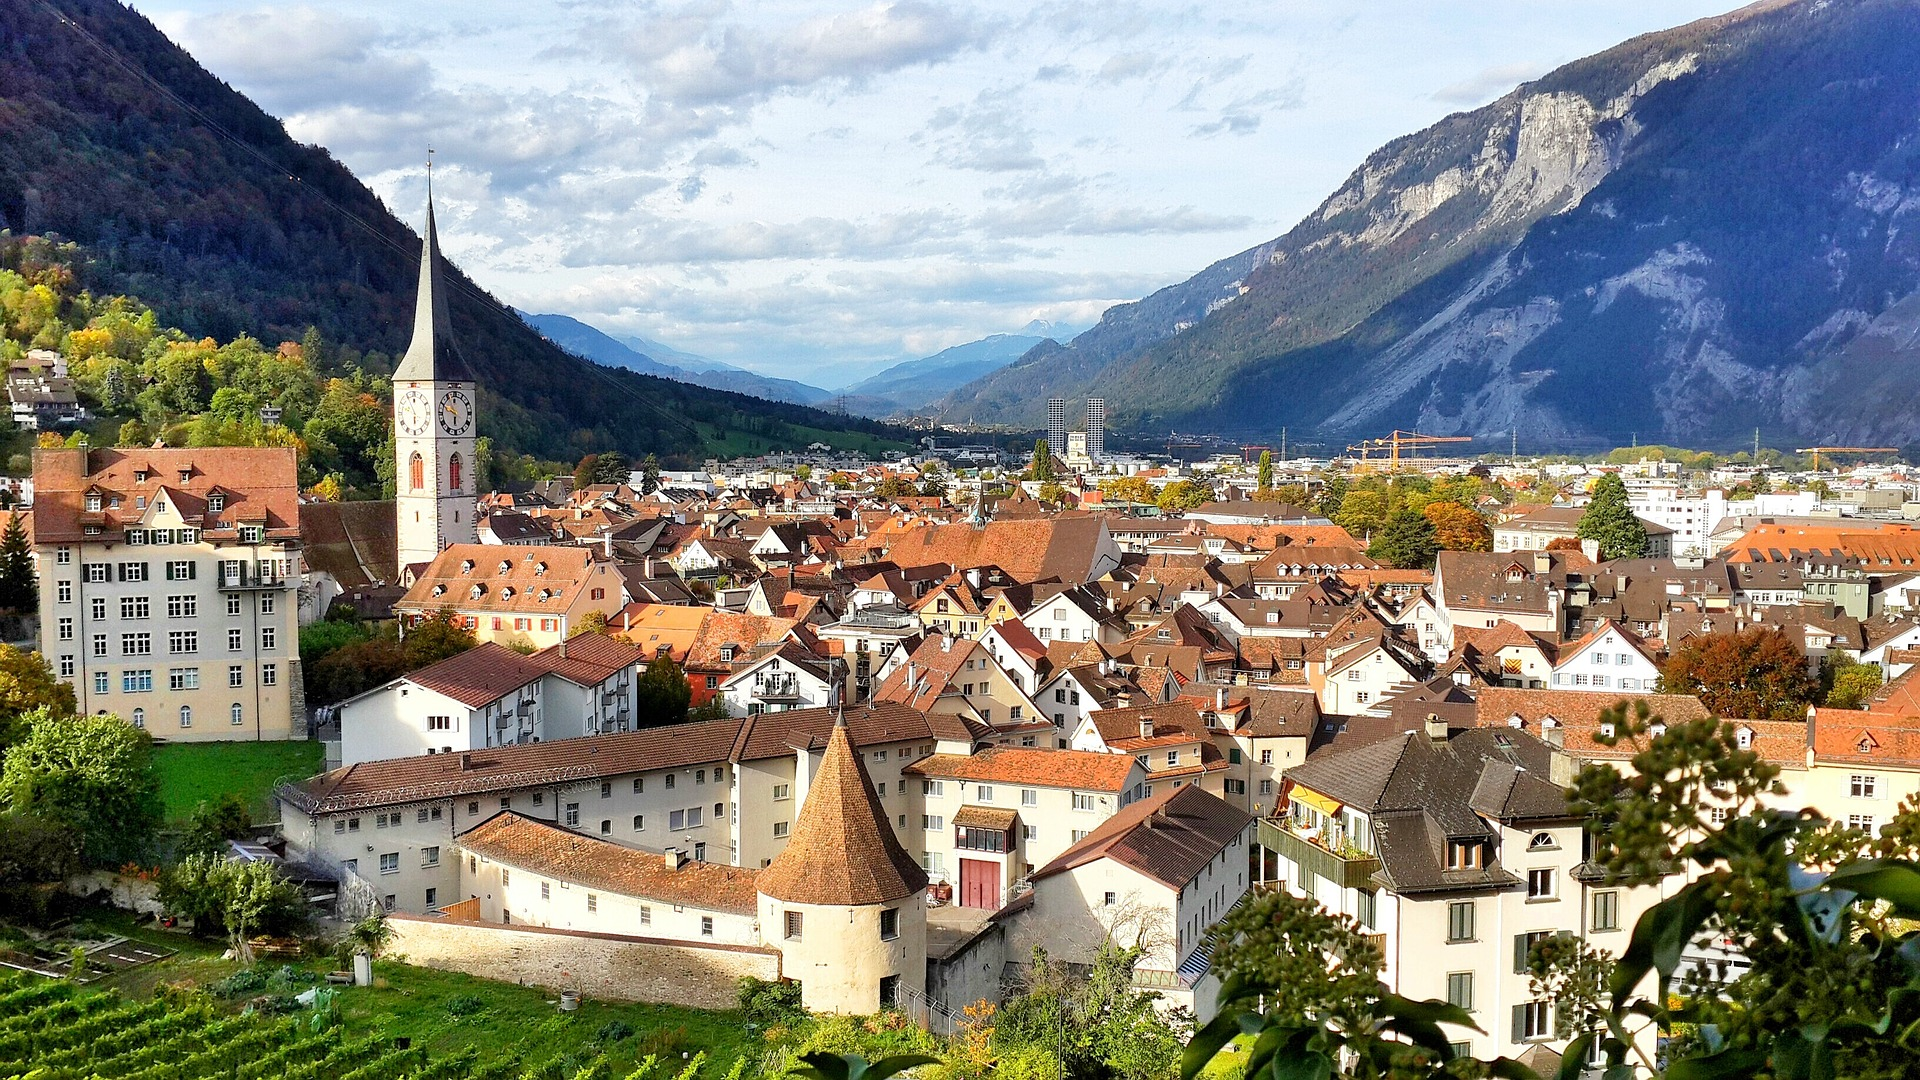 chur-swiss-oldest-town-home-of-ehl-passugg-students